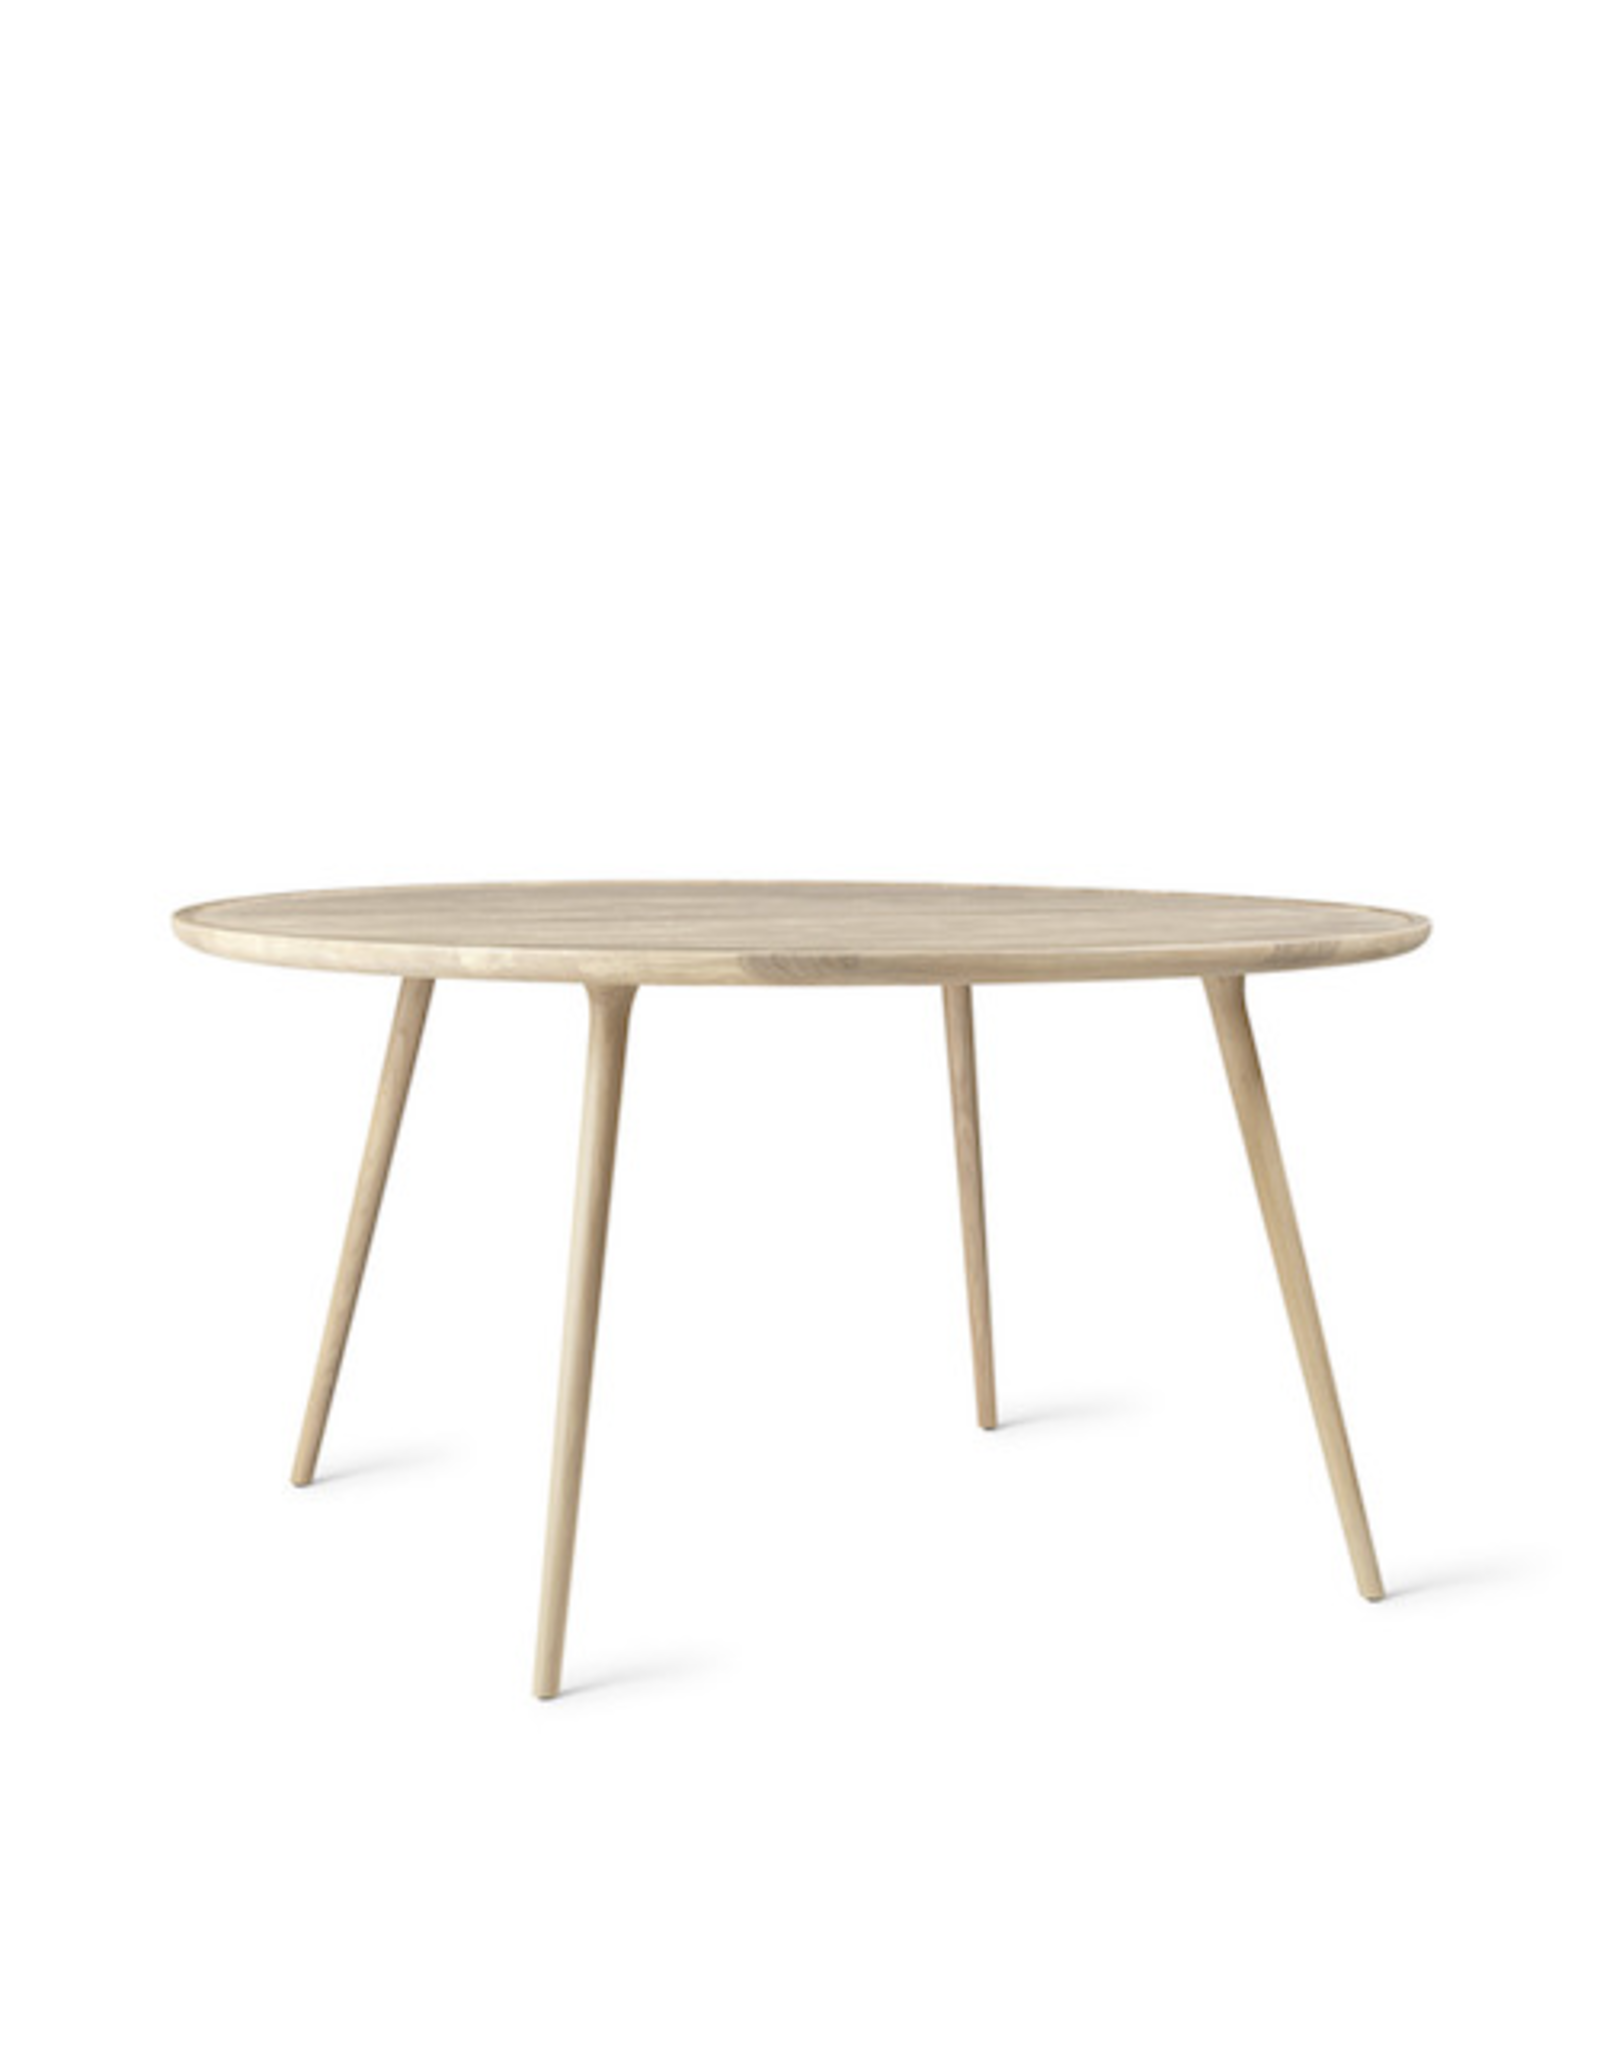 MATER ACCENT DINING TABLE IN MATT LACQUERED OAK WOOD